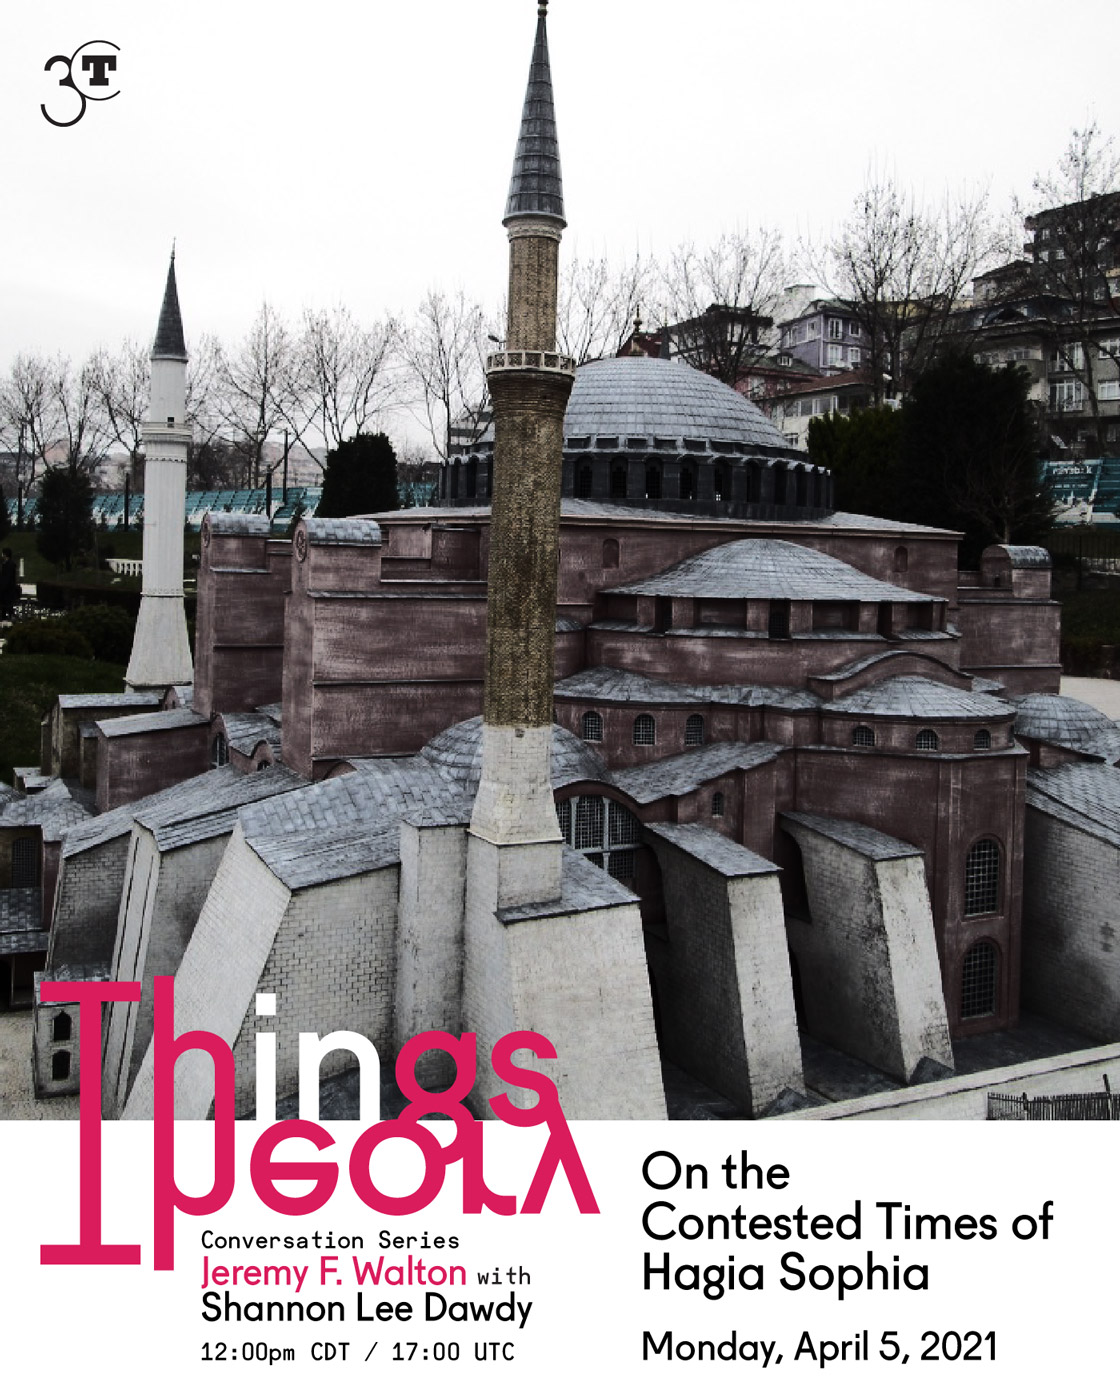 poster with event details and image of small-scale model of the Hagia Sophia building situated in a park